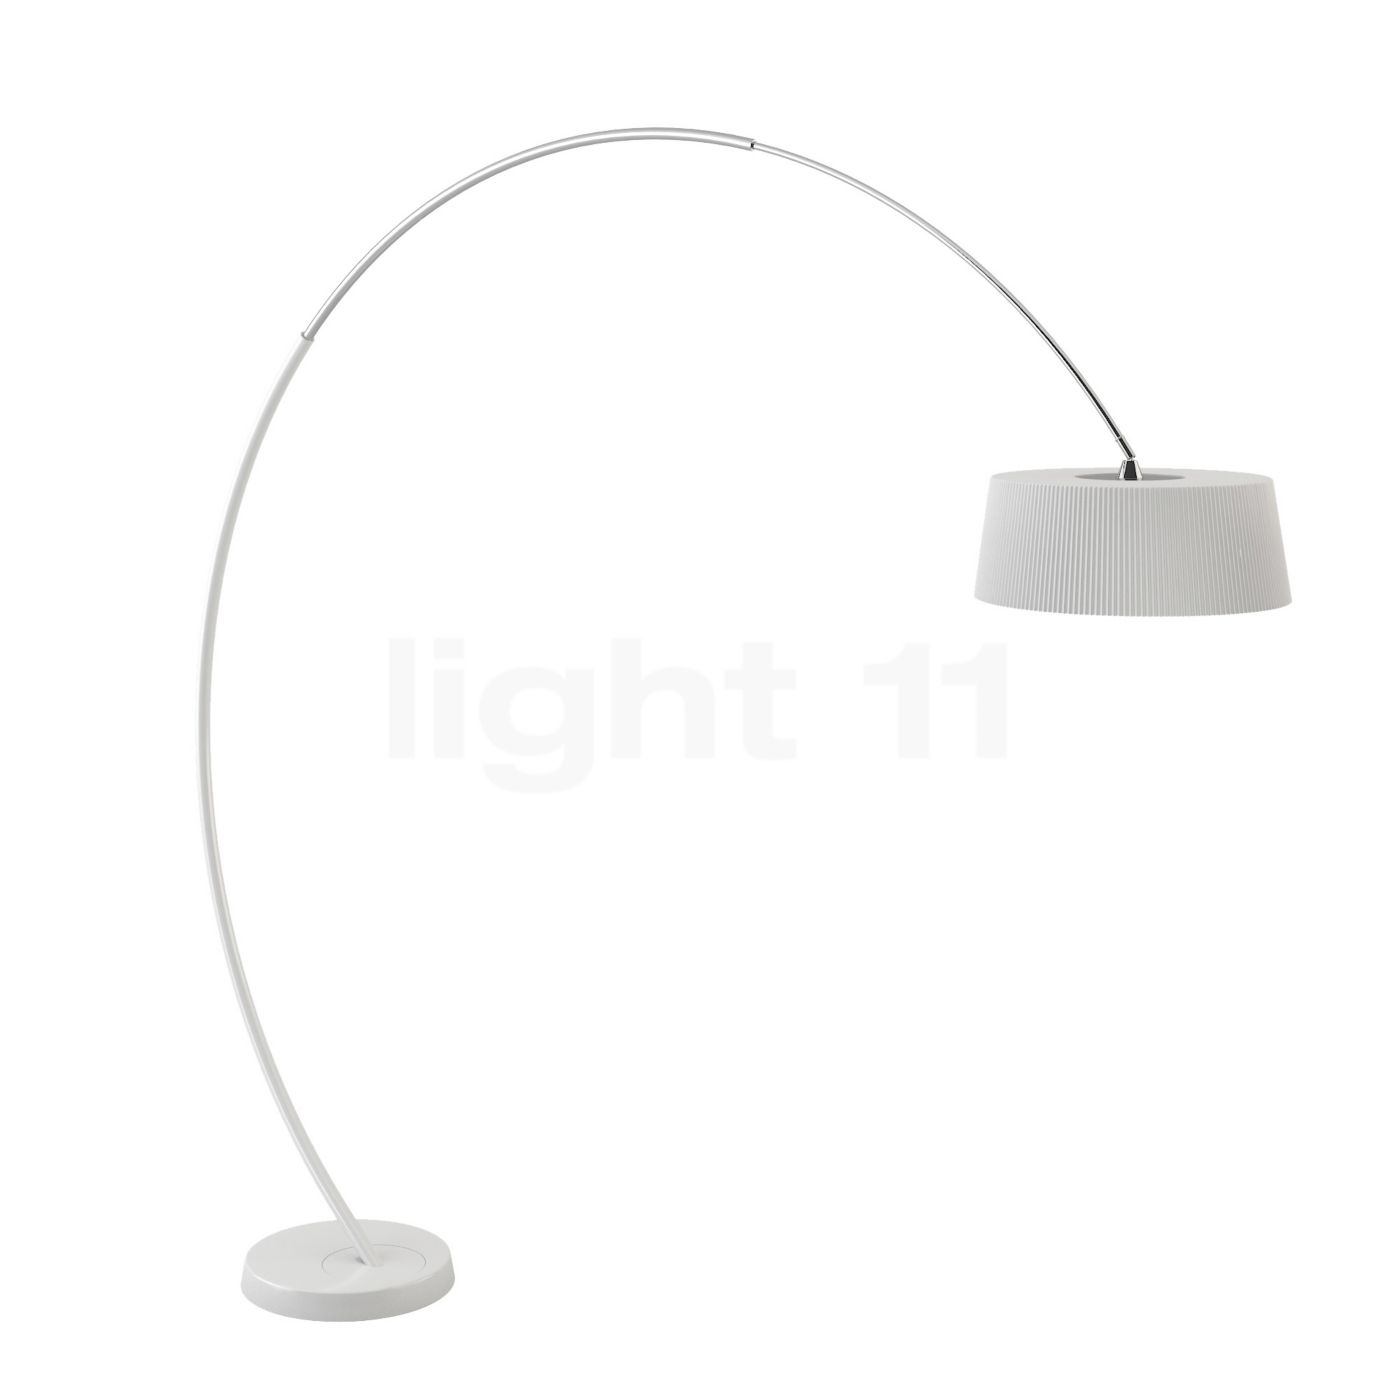 LEDS-C4 Hoop Lampada ad arco - light11.it